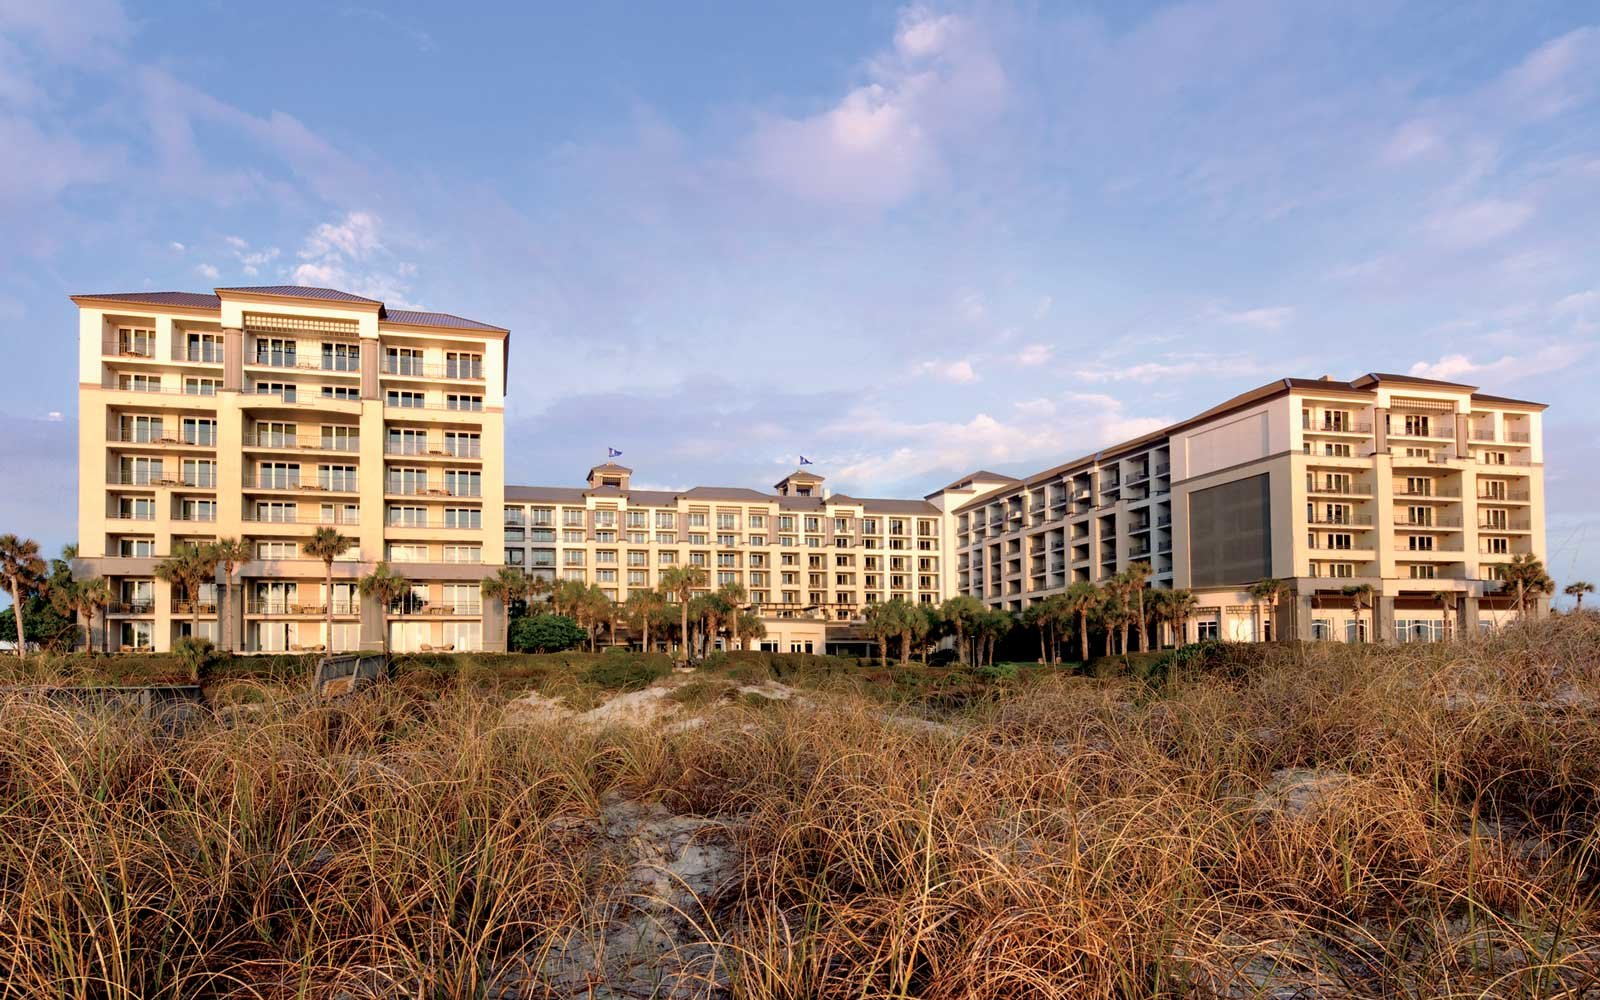 Exterior of the Ritz Carlton resort at Amelia Island, Florida